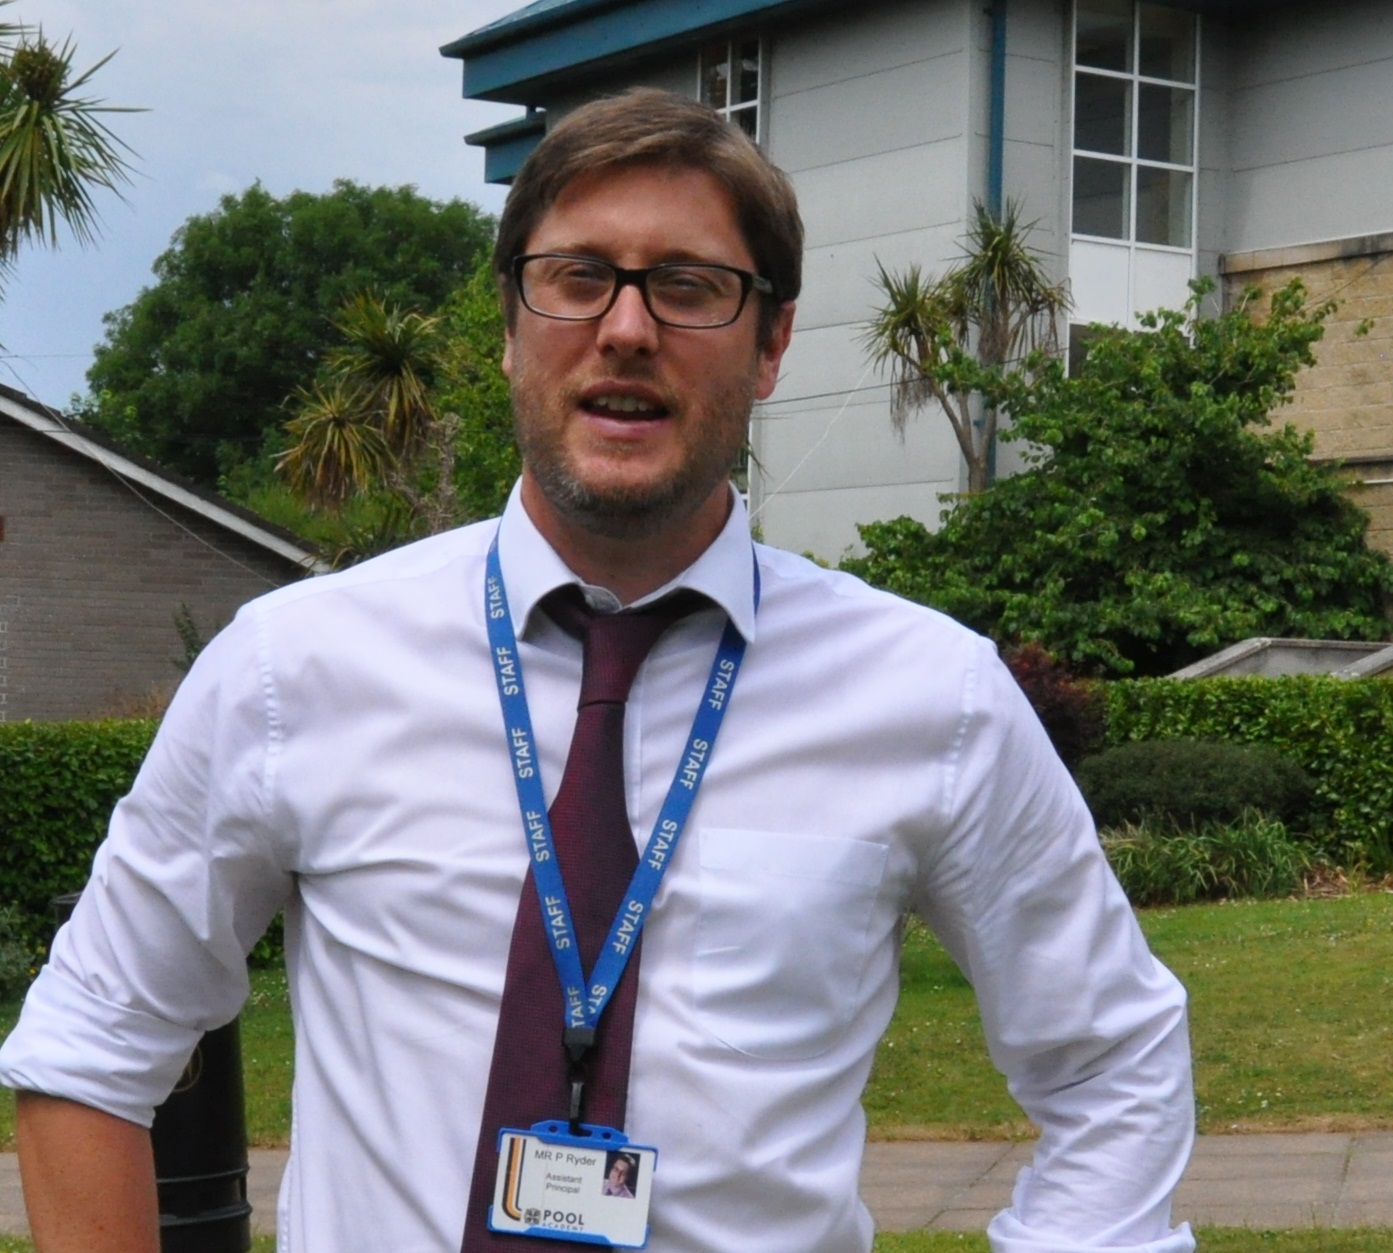 Mr Ryder is Head of English and Modern Foreign Languages.